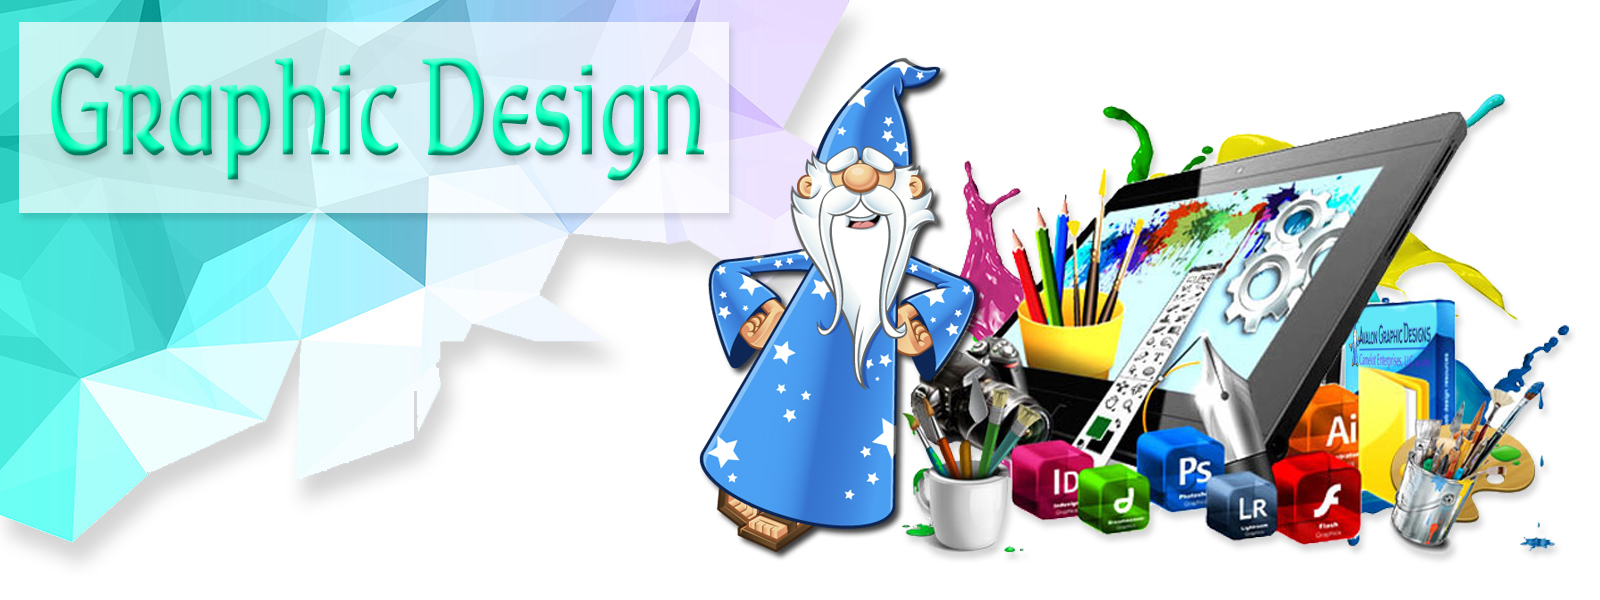 KJ's Art Studio | KJsArtStudio.com | Digital and Graphic Design Services